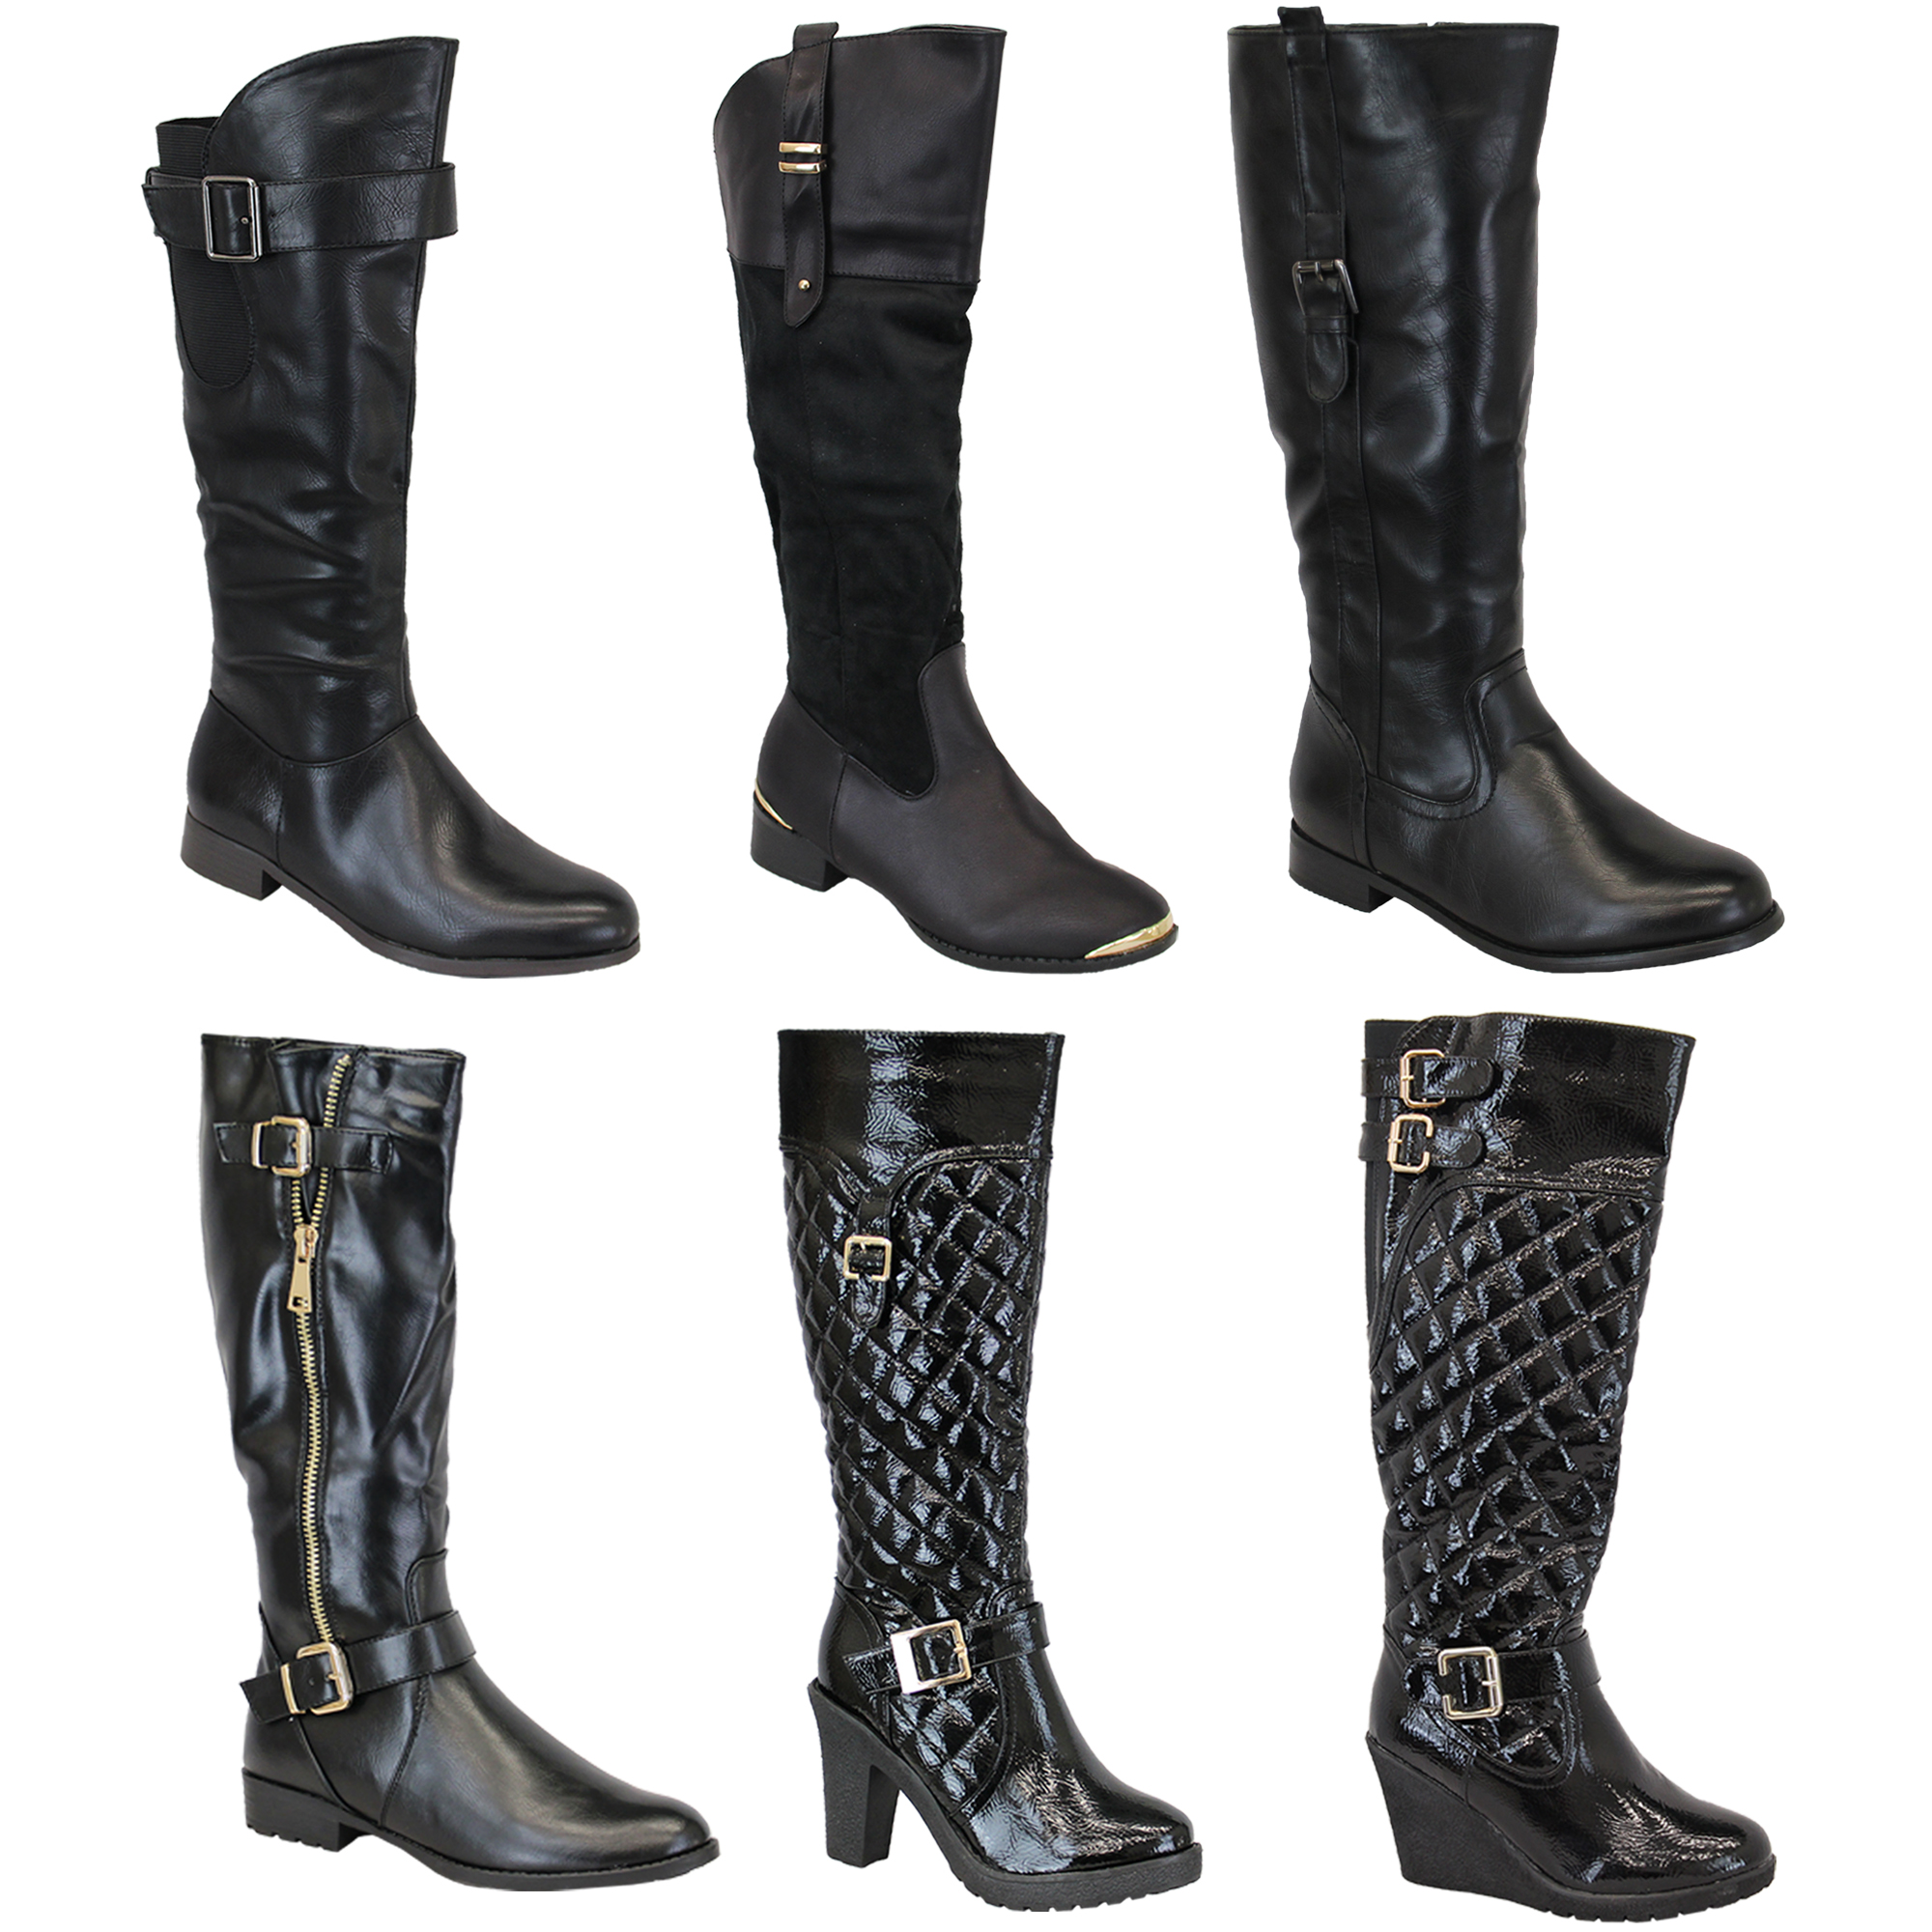 Find great deals on eBay for long boots. Shop with confidence. Skip to main content. eBay: Womens Fashion Block Heels Long Boots Casual Buckle Leather Knee Boots Shoes New. Unbranded. $ Buy It Now. Free Shipping. Womens Girl Over The Knee High Flat Ladies Long Faux Suede Thigh High Boots. Brand New. $ Buy It Now. Free Shipping.